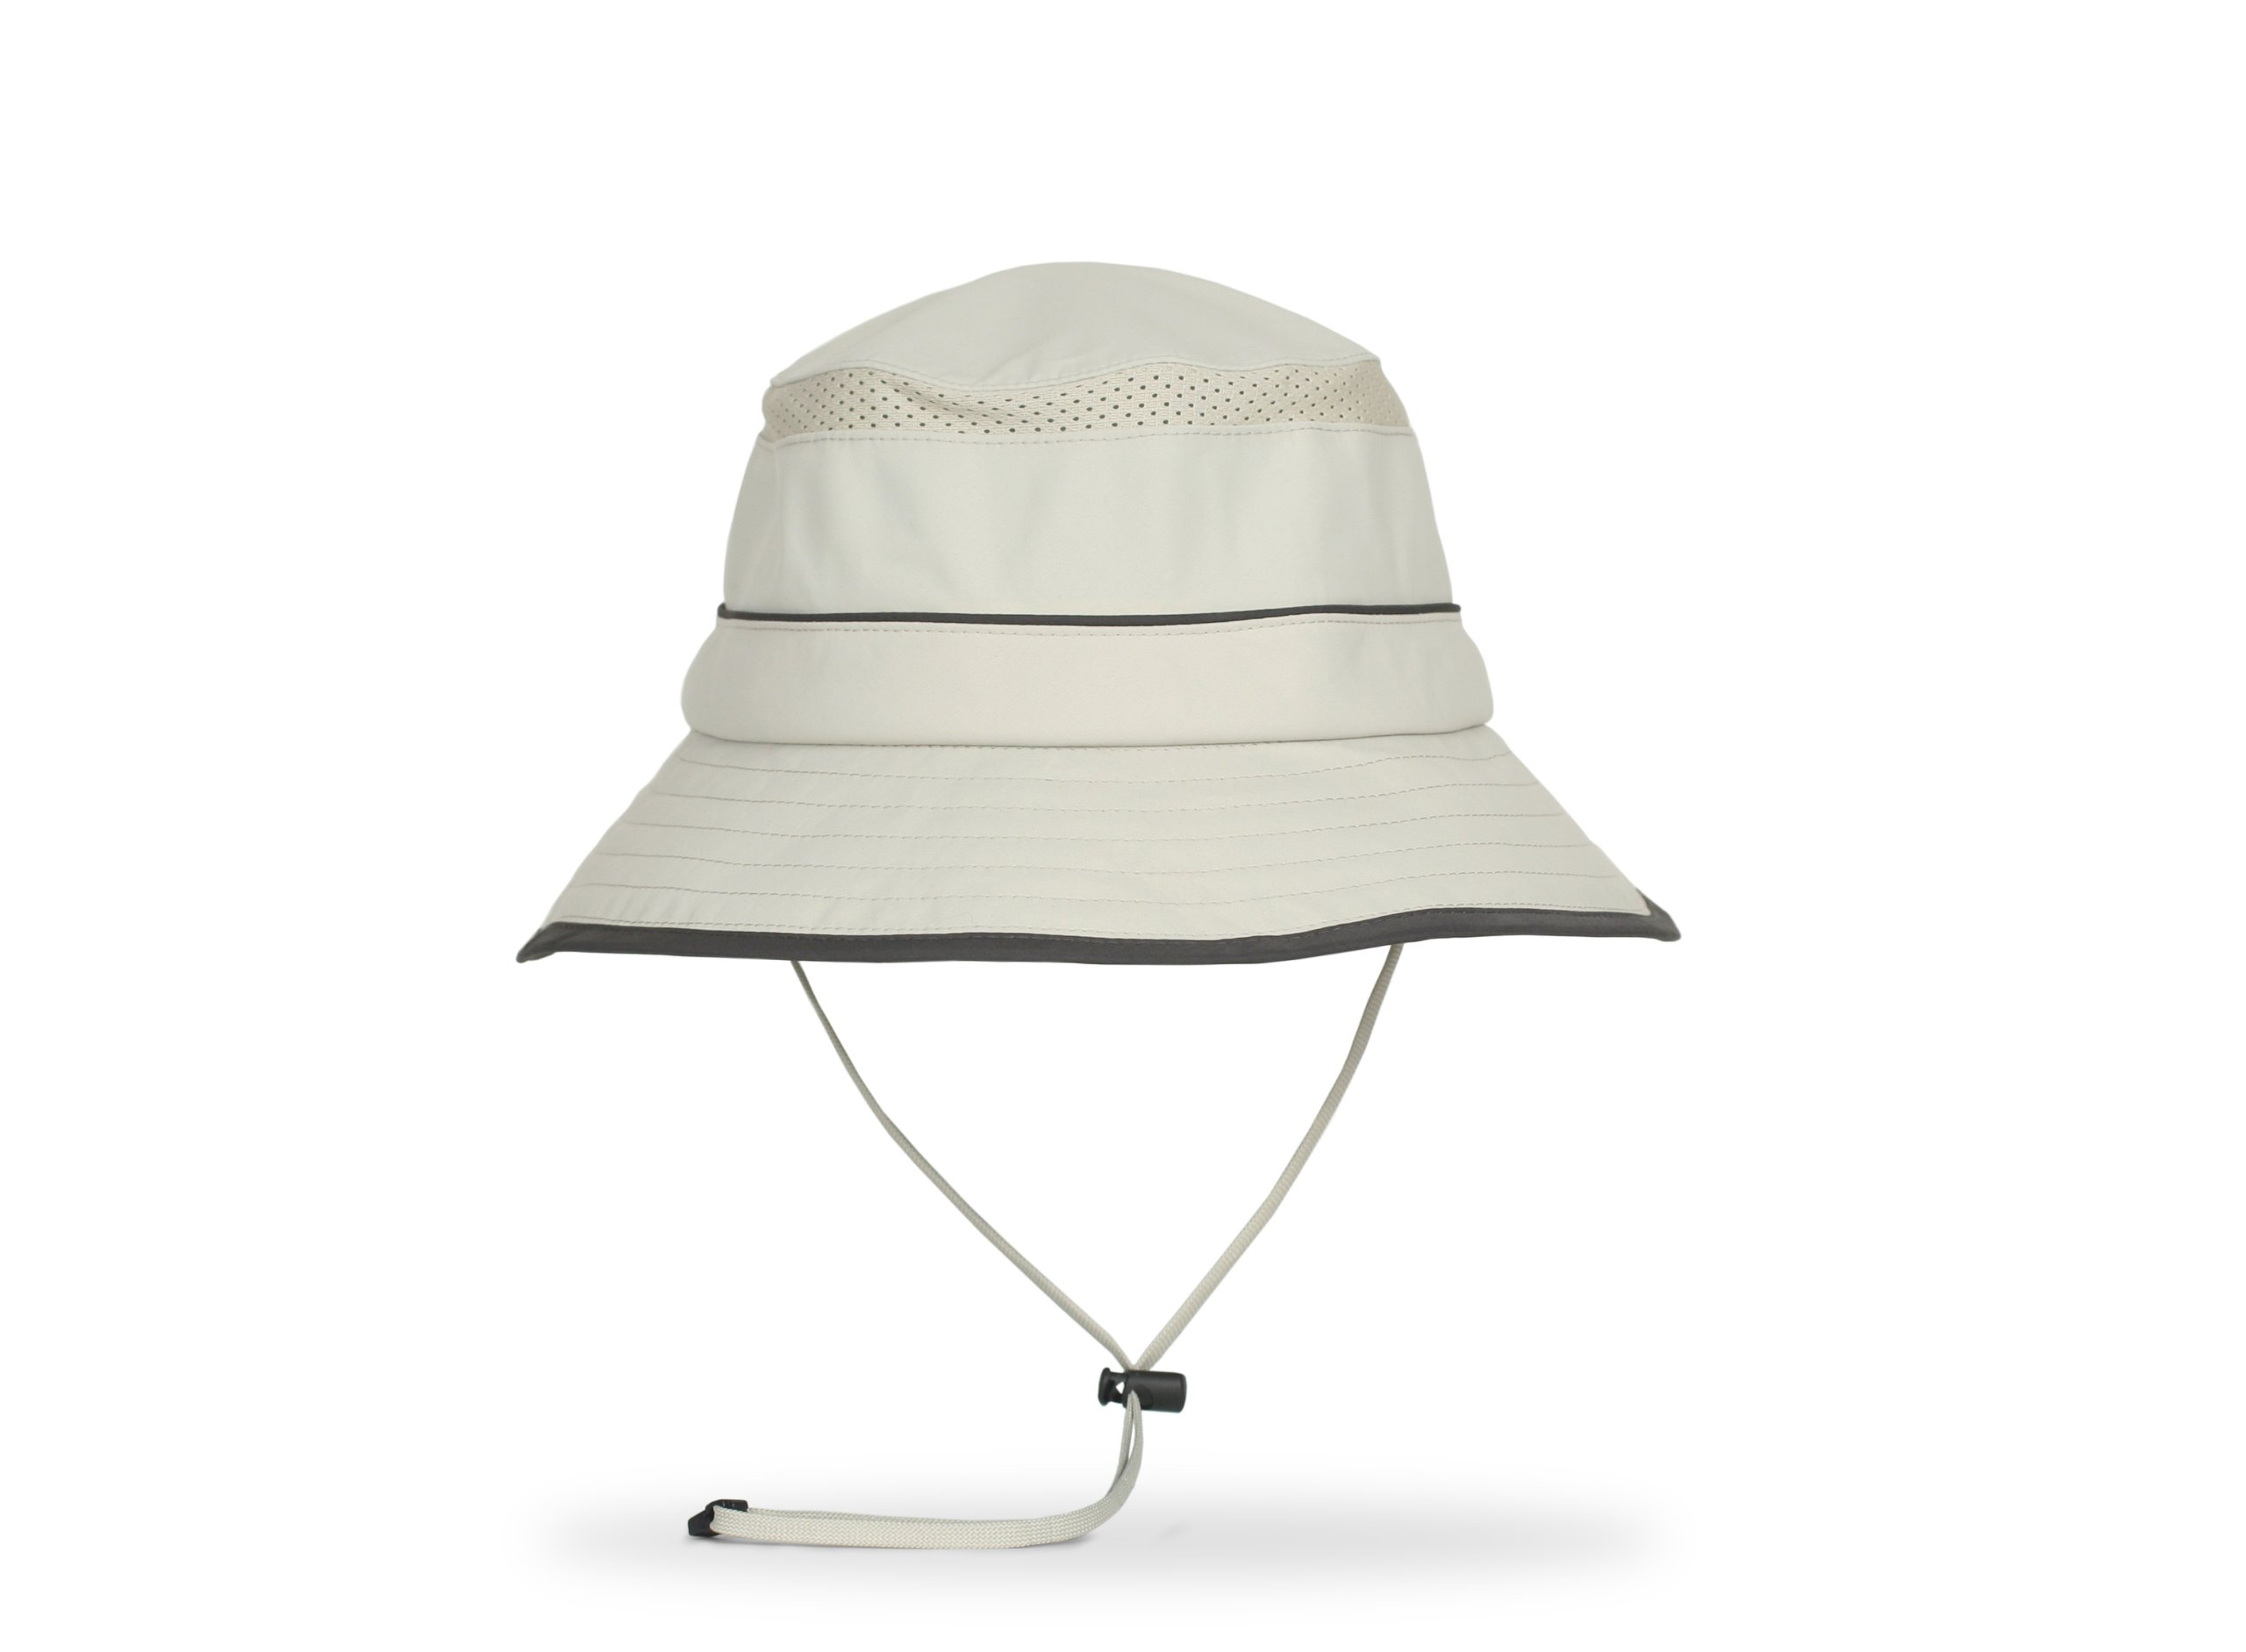 Sunday Afternoons Solar Bucket Hat, Cream, Large